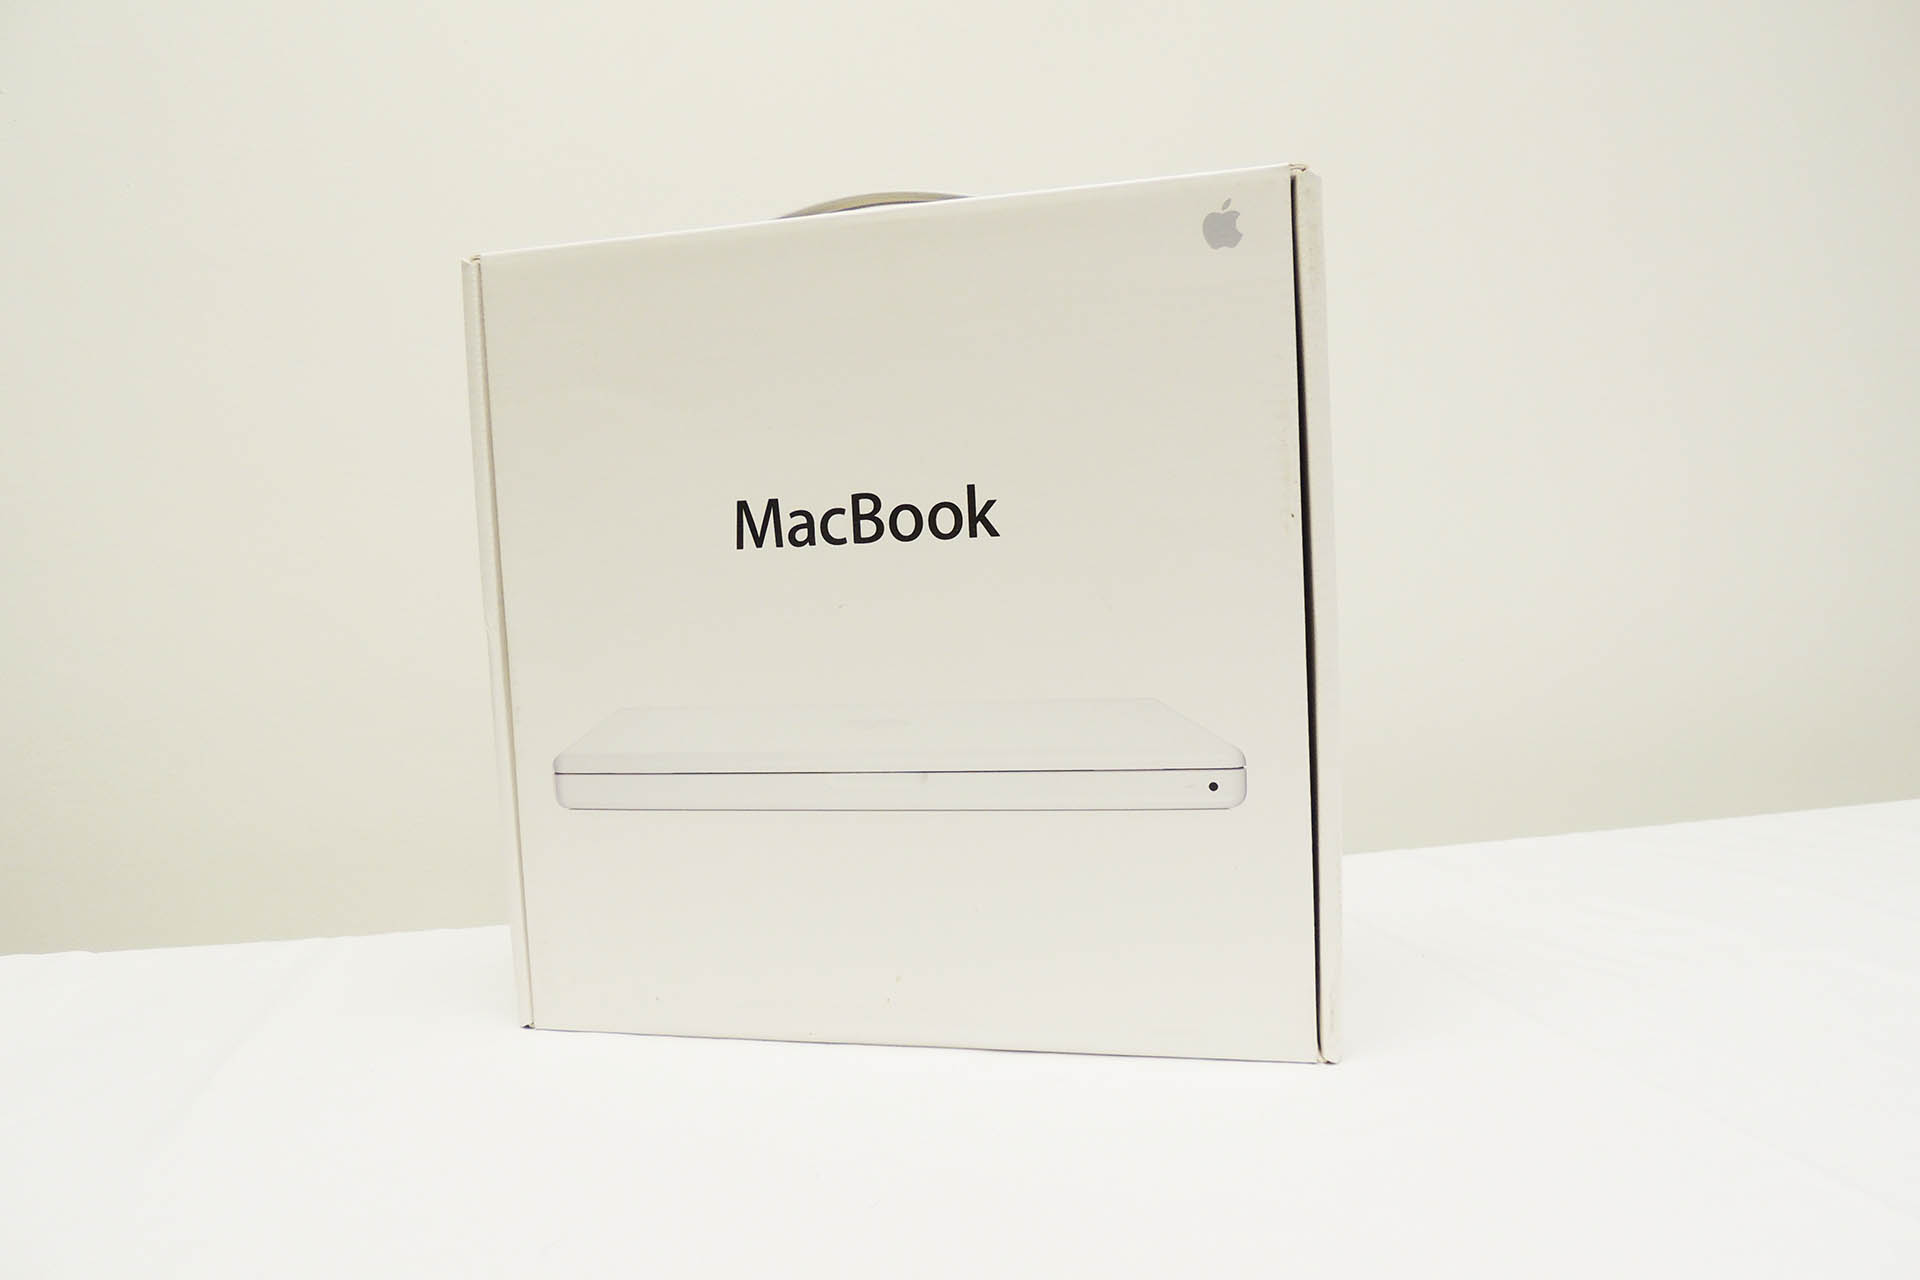 Vintage Apple MacBook for sale at Plasma Music